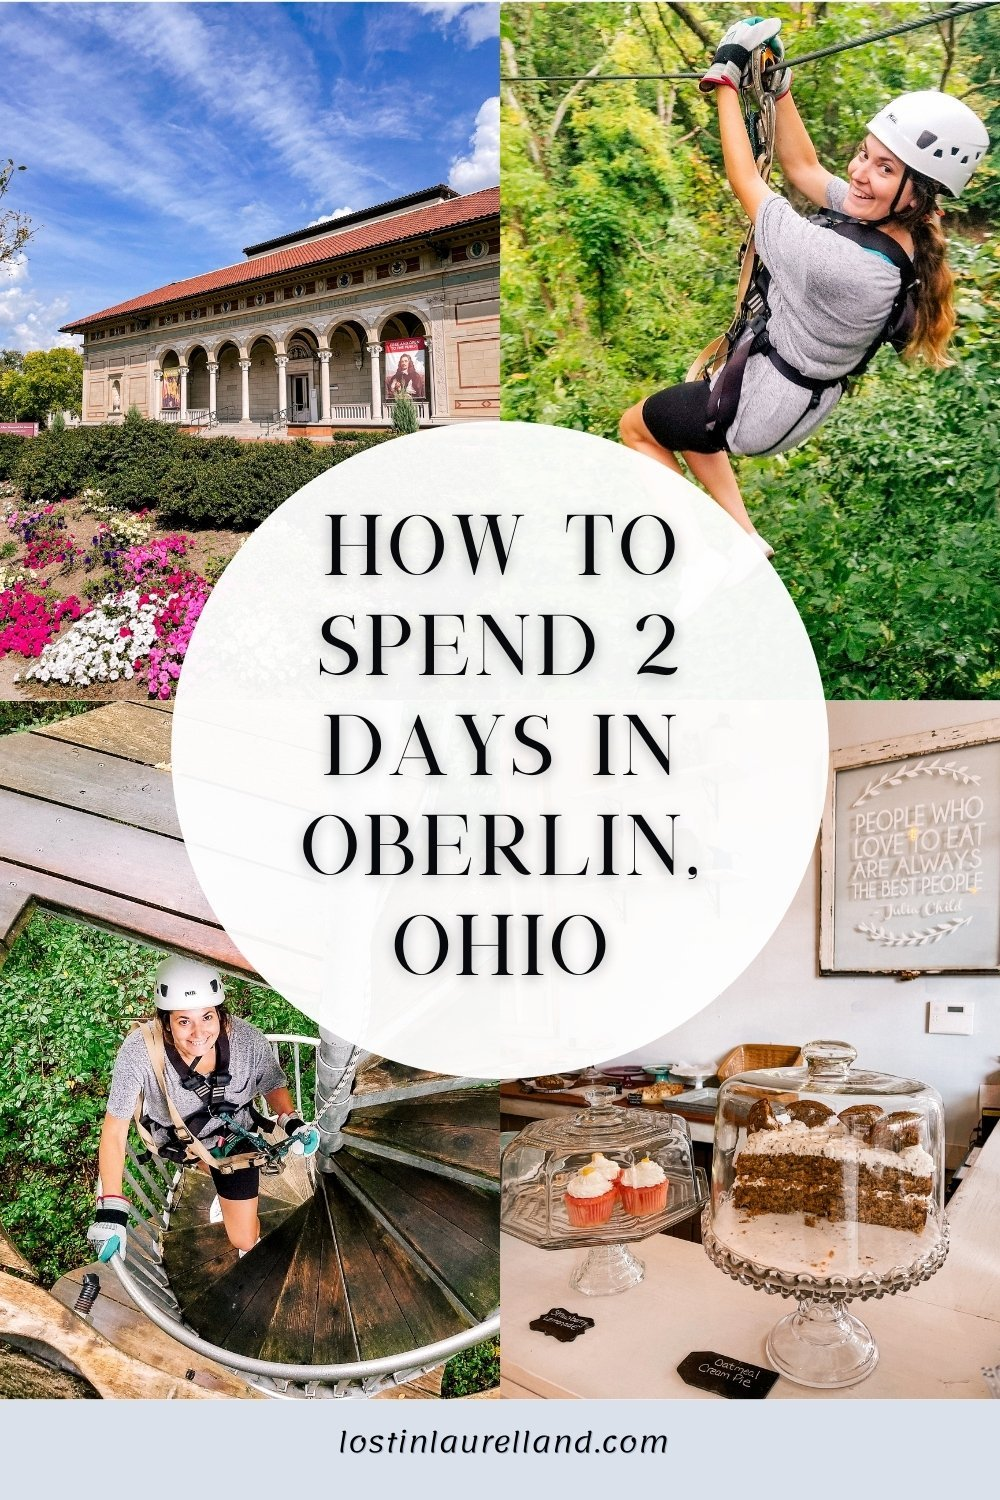 How To Spend 2 Perfect Days In Oberlin, Ohio This Fall